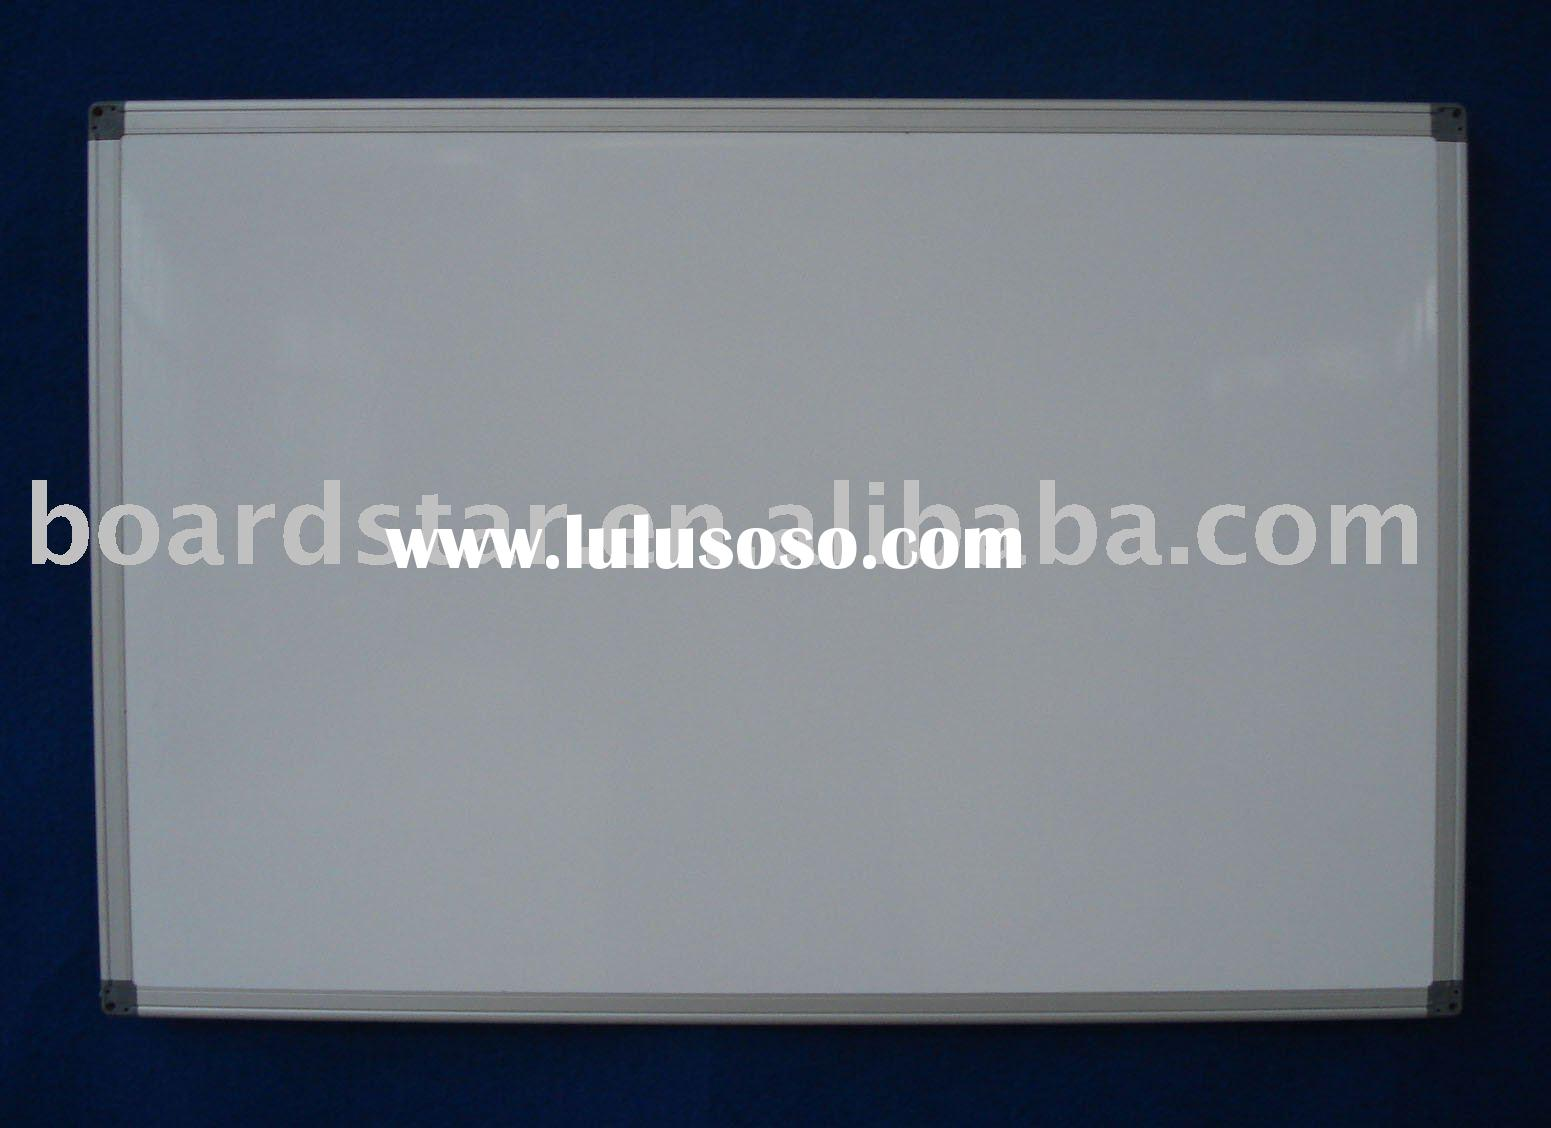 Single Magnetic Porcelain/Ceramic Whiteboard (BSPBG-K)